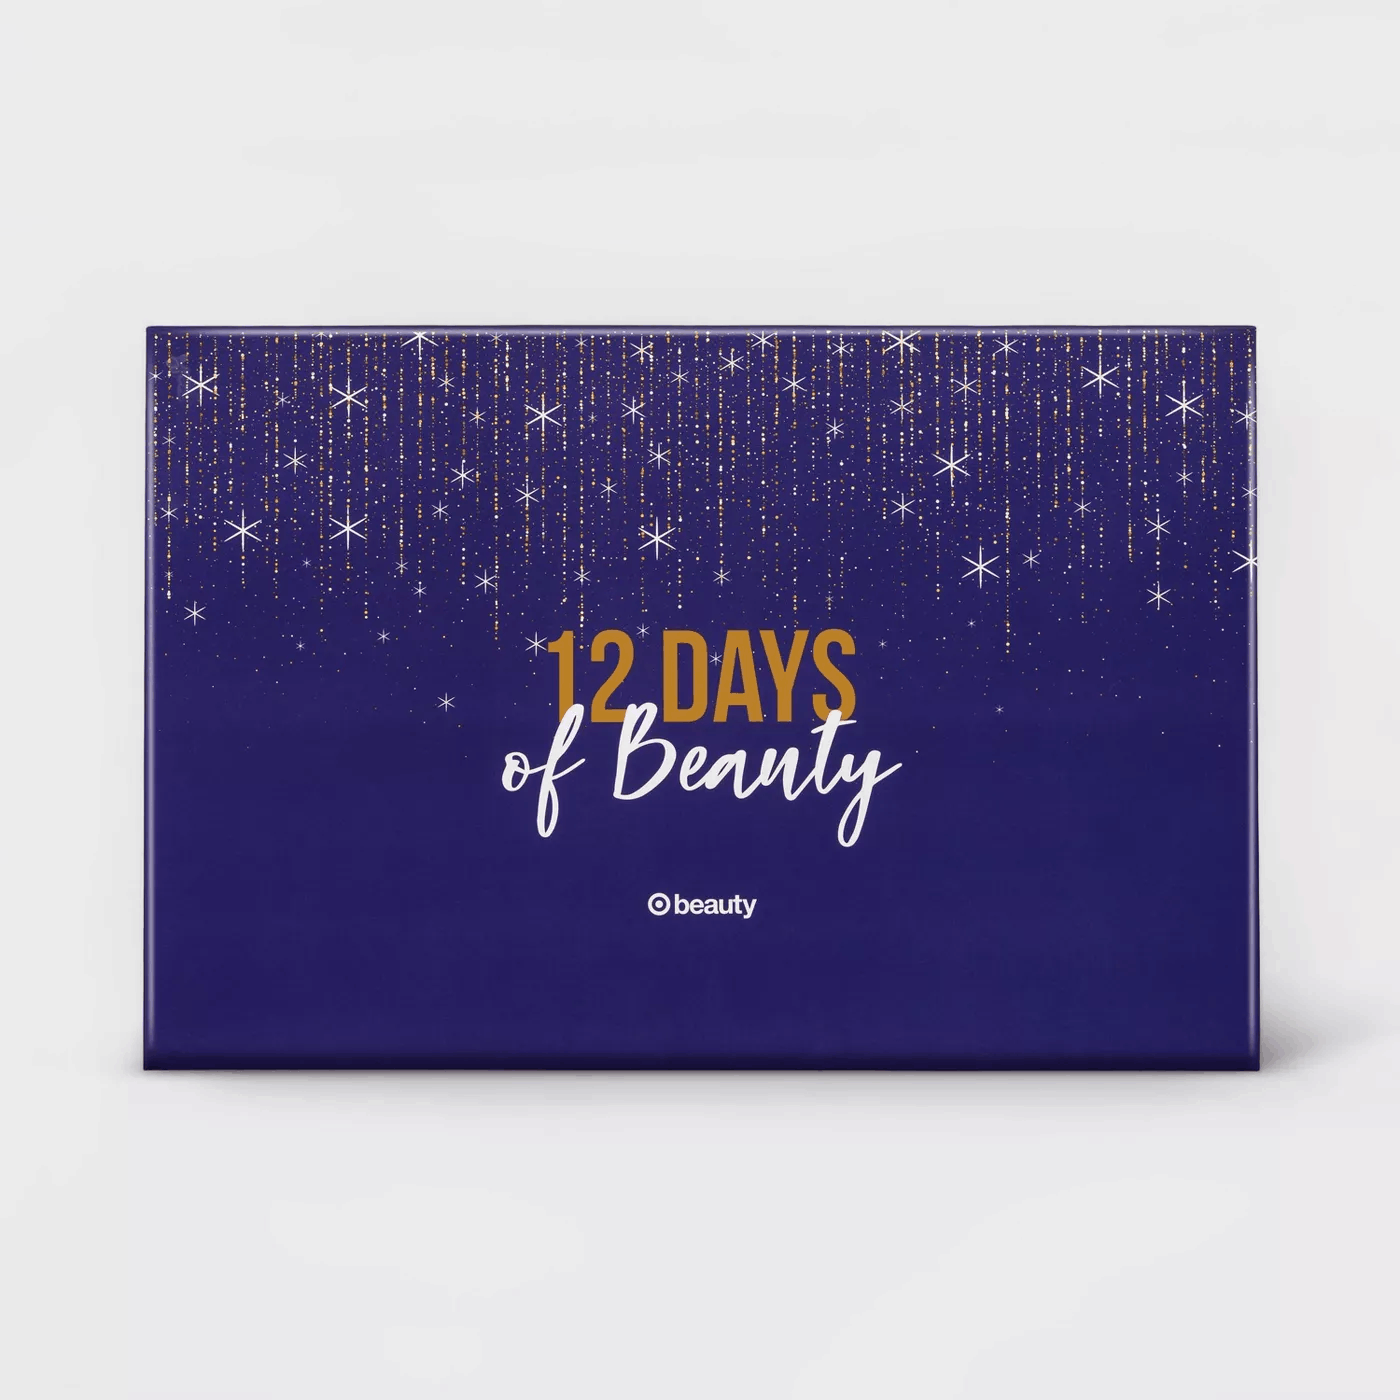 Target 12 Days of Beauty Advent Calendar Cyber Monday Coupon – Save 25%!